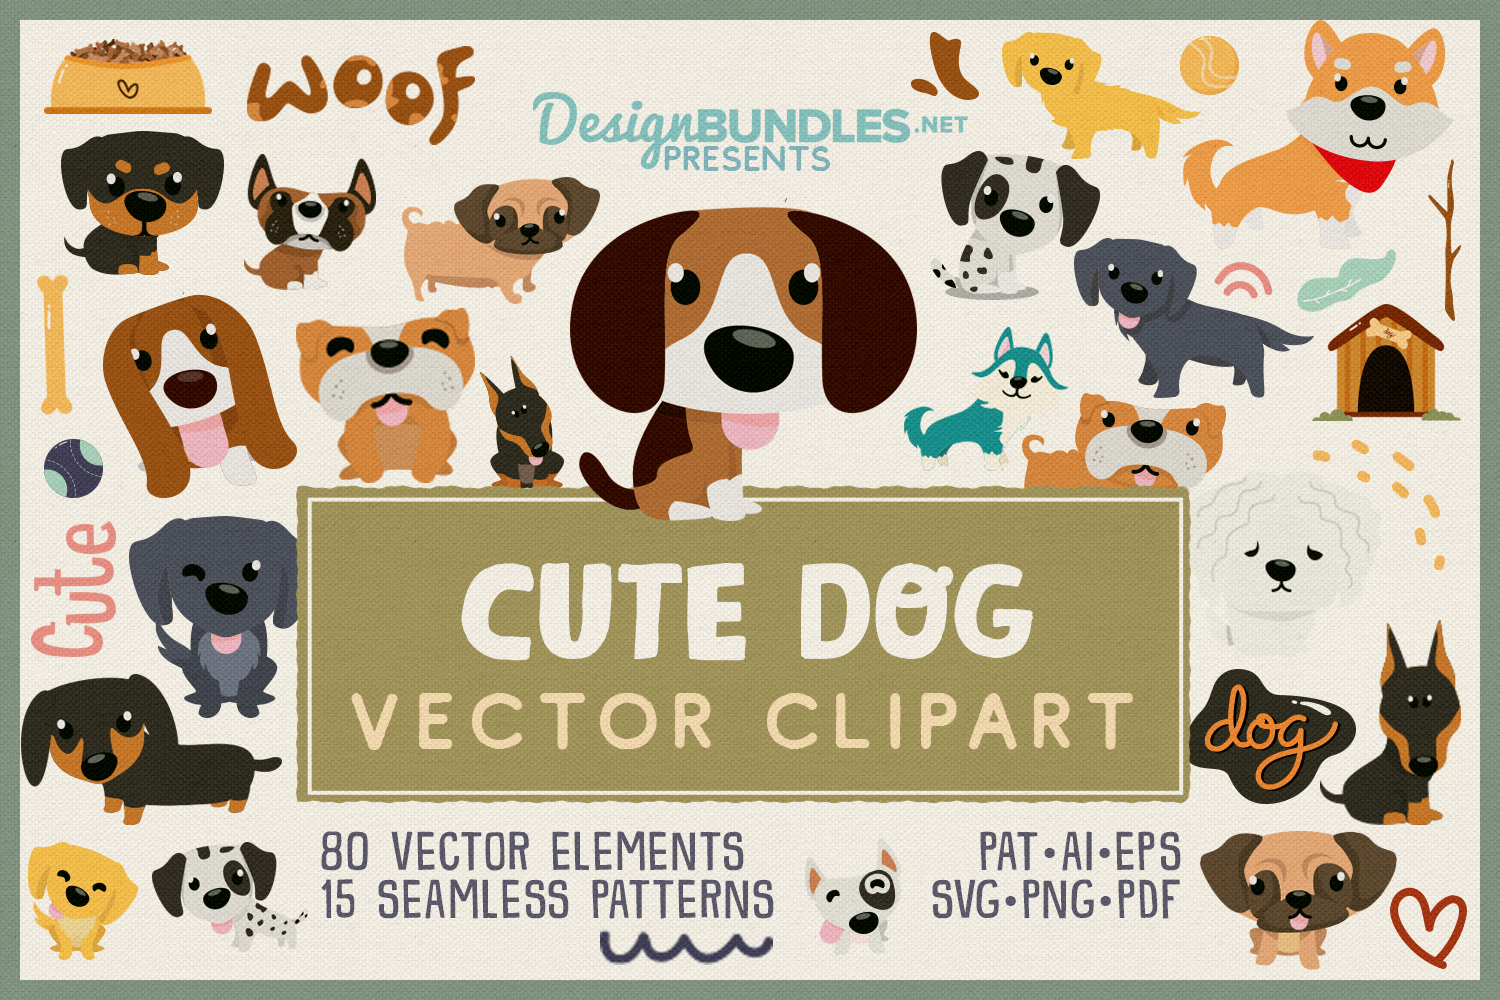 80 Cute Dog Vector Clipart & Seamless Patterns example image 1